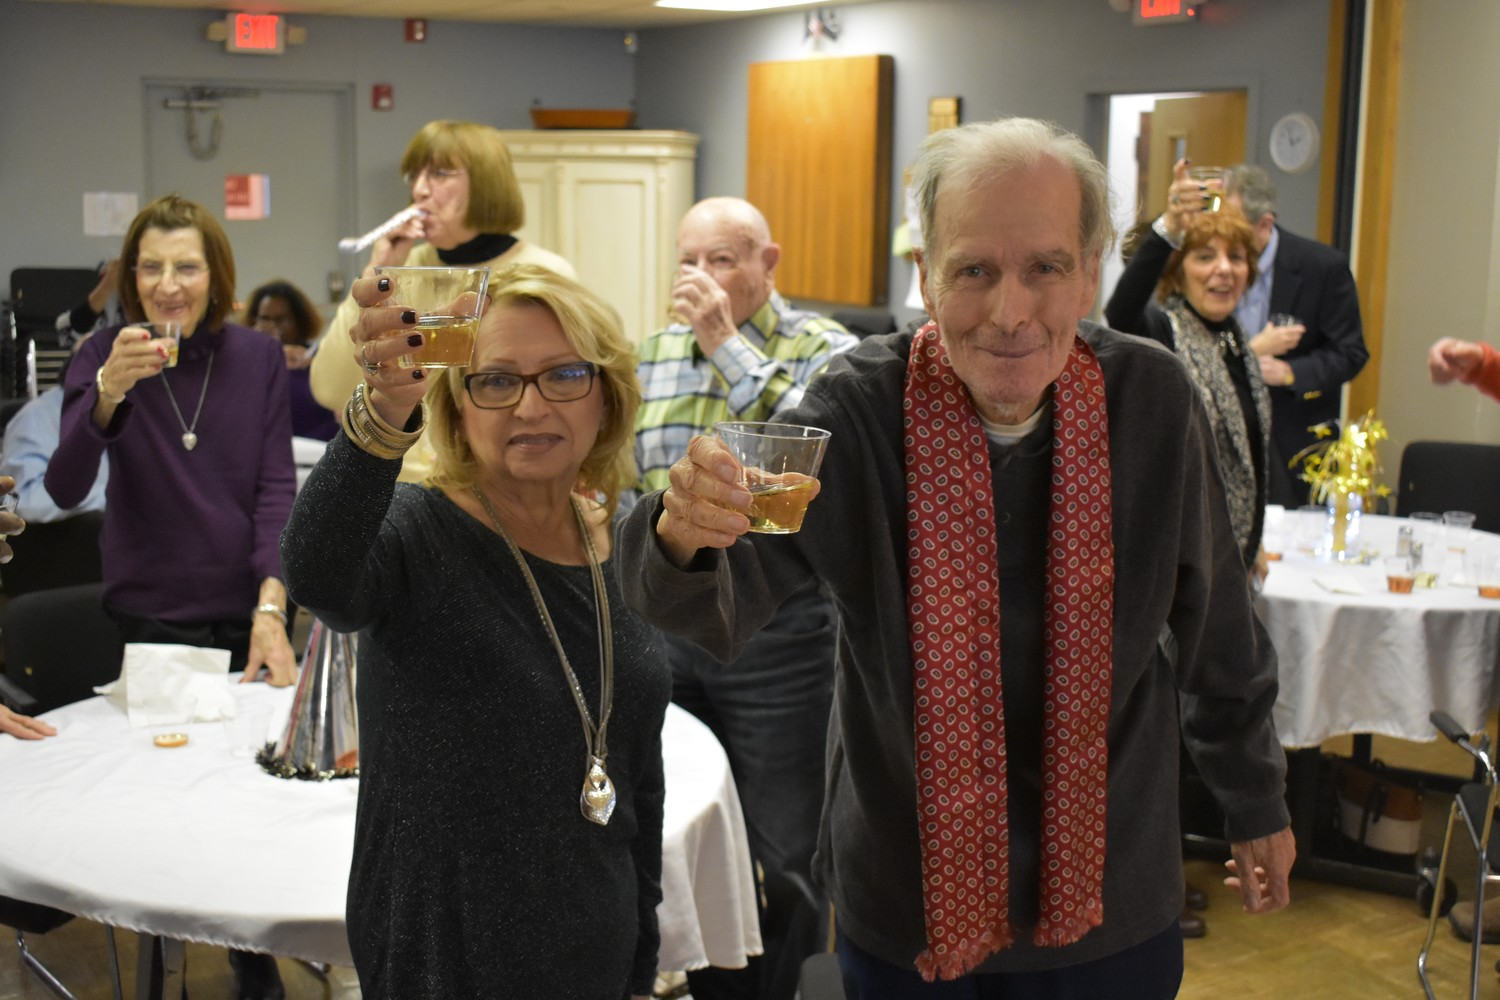 Lee Schmidt, left, and John Bones raised their glasses to celebrate the coming of 2018 during the center's annual New Year's party on Monday.